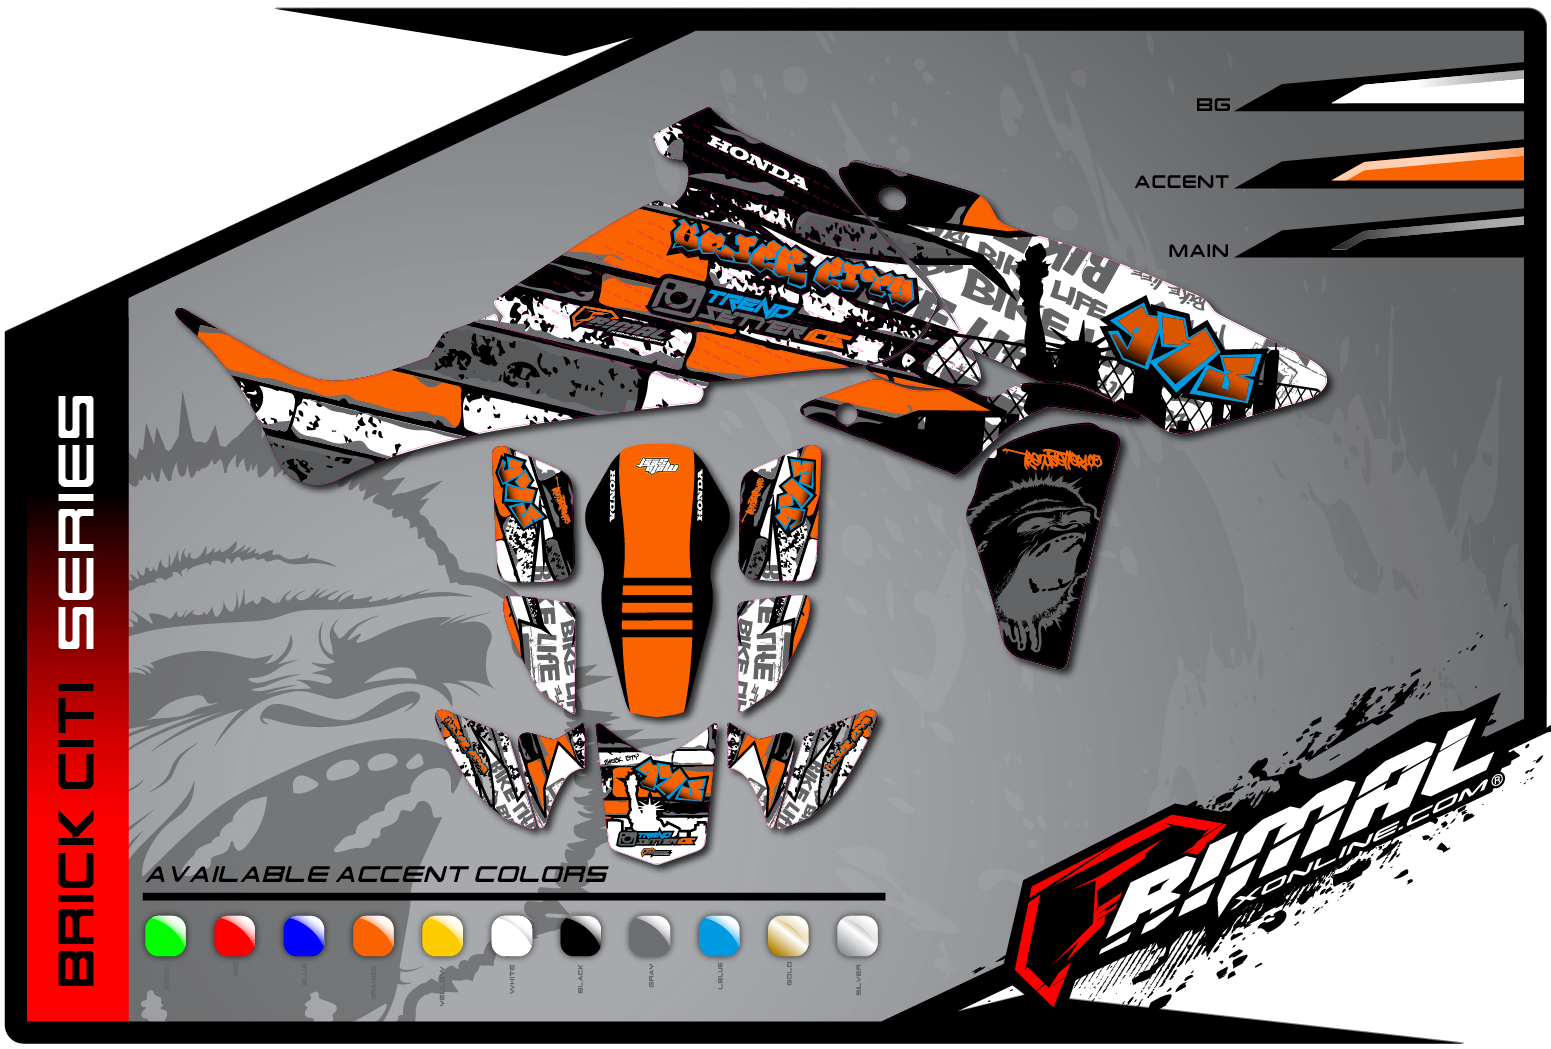 Primal X Motorsports MX Graphics ATV GRAPHICS TRX 450 Brick Citi